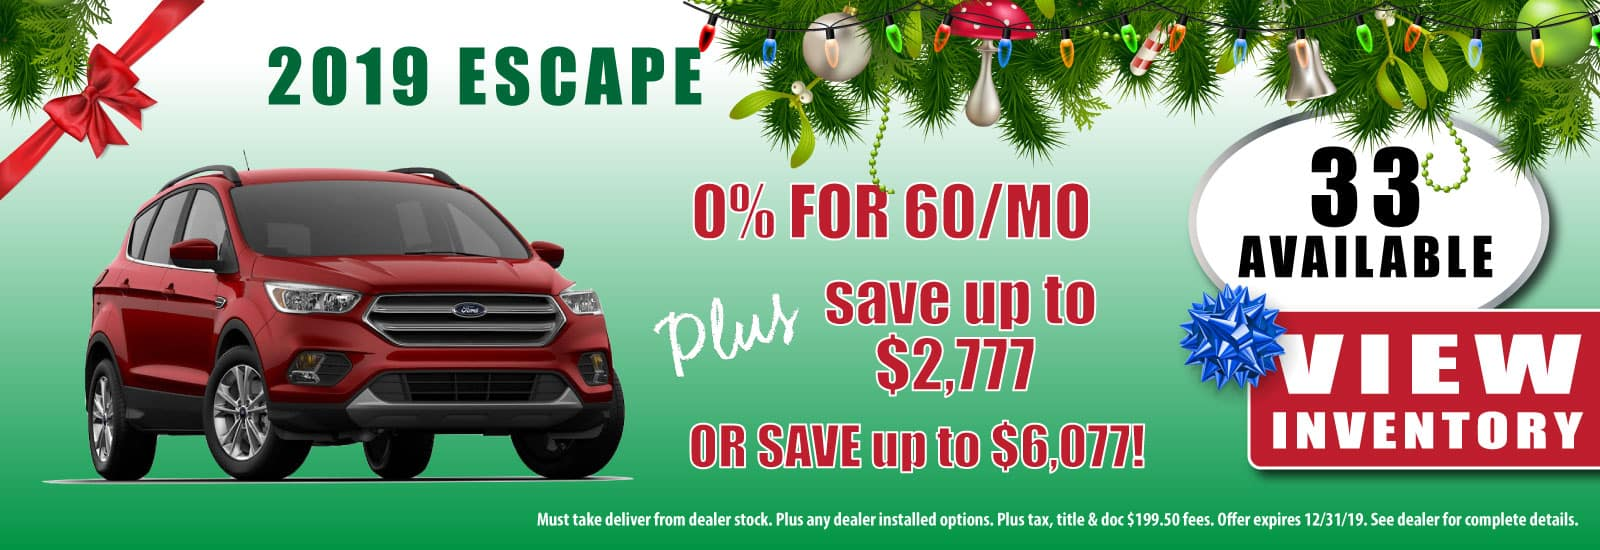 Ford Escape Christmas Tree Commercial 2020 Youtube Happy Holidays